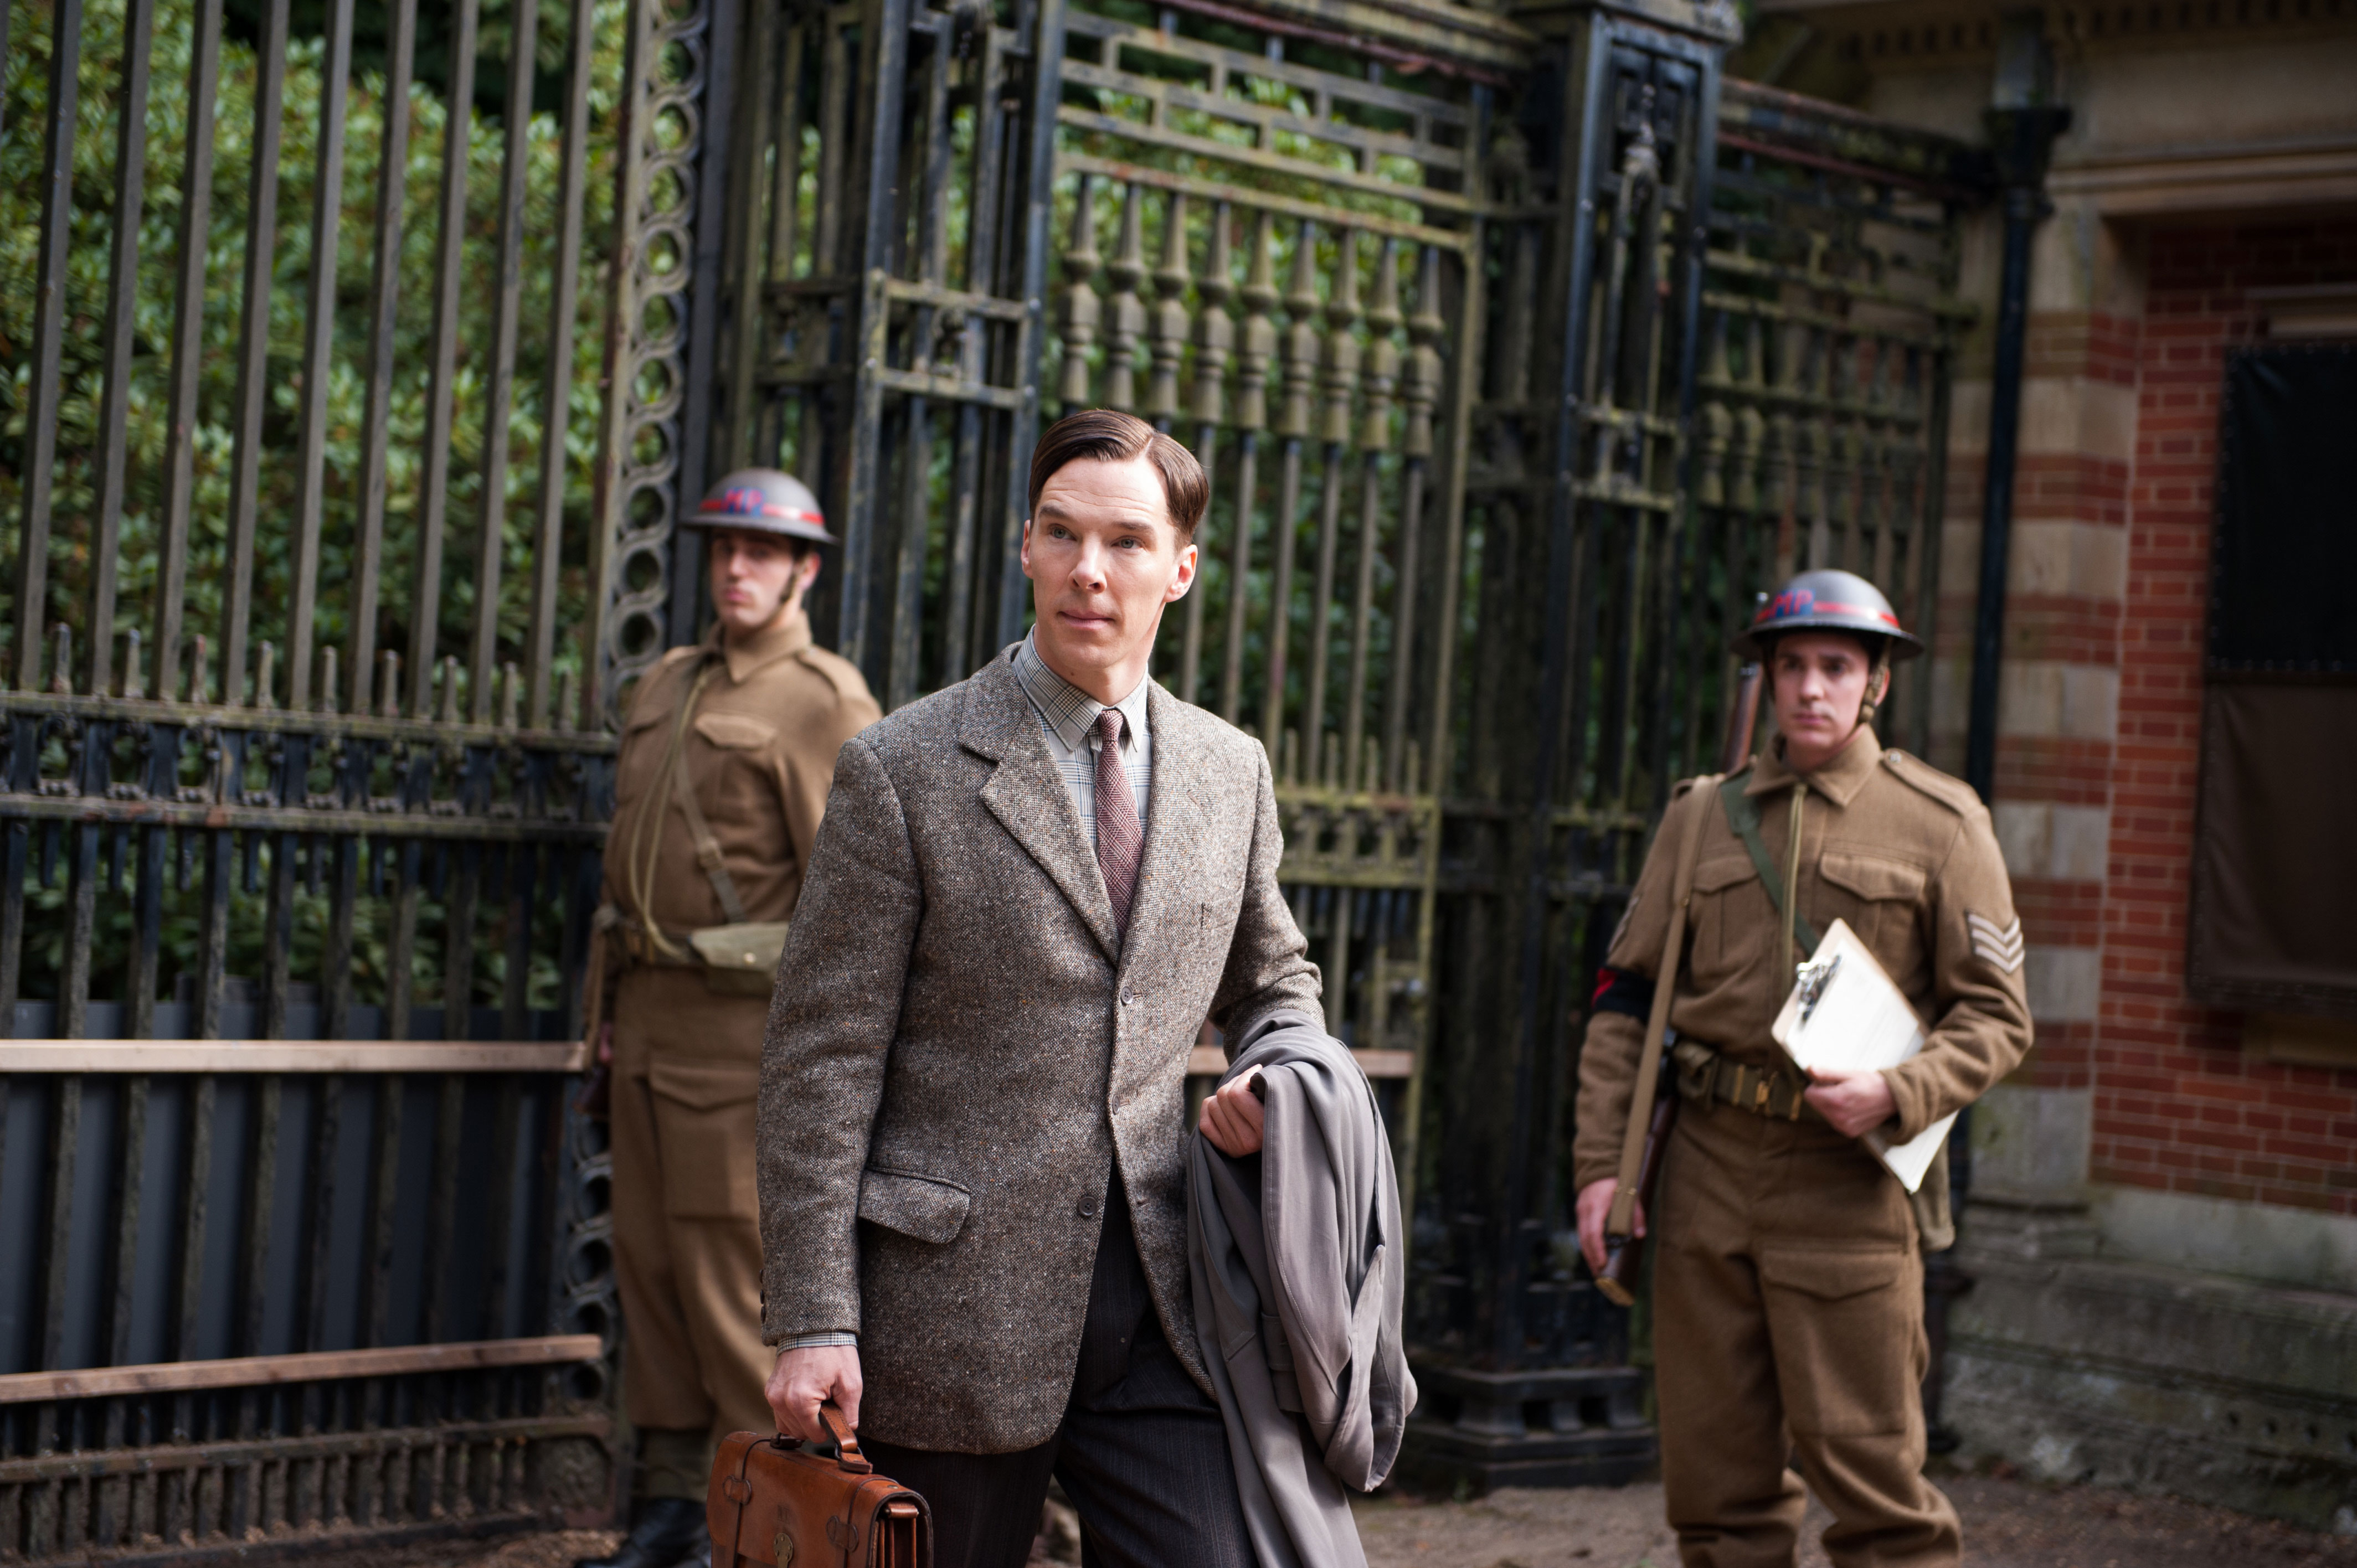 Paul S Review Of The Imitation Game 2014 Cumberbatch And More Cumberbatch